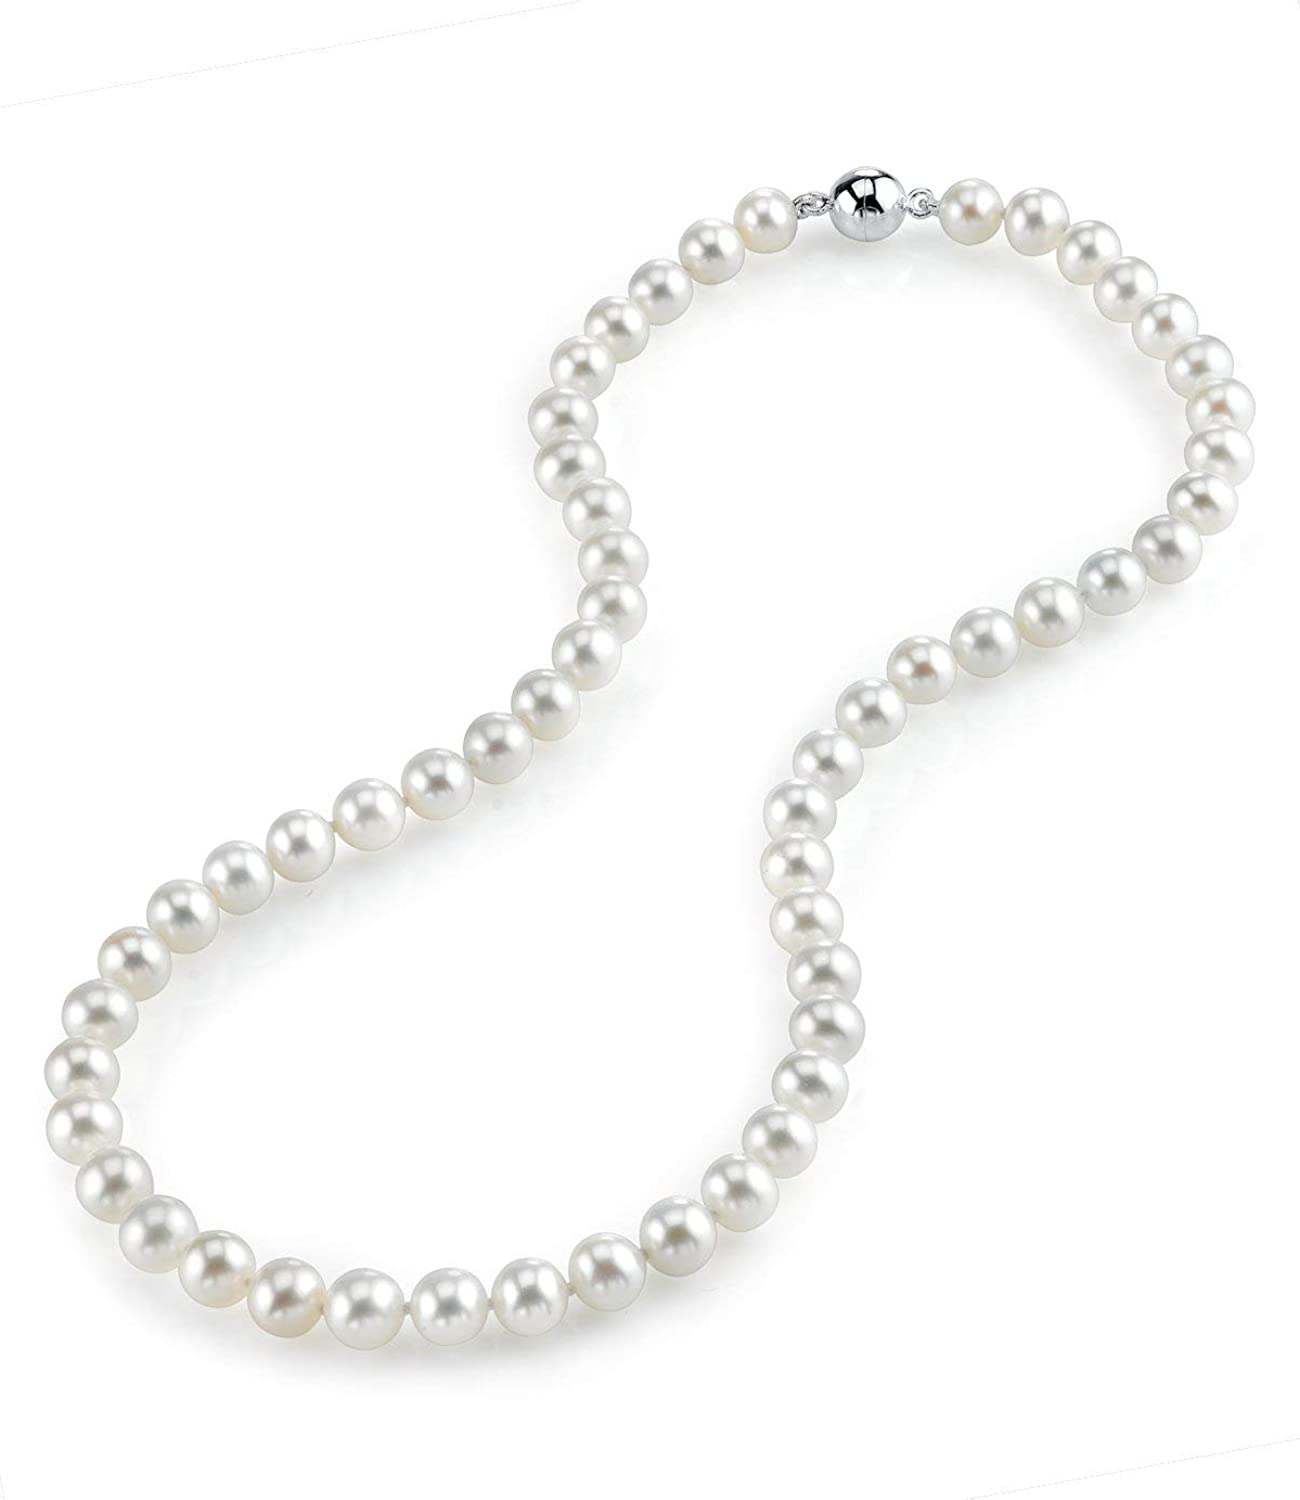 THE PEARL SOURCE AAA Quality Round White Freshwater Cultured Pearl Necklace for Women with Magnetic Clasp